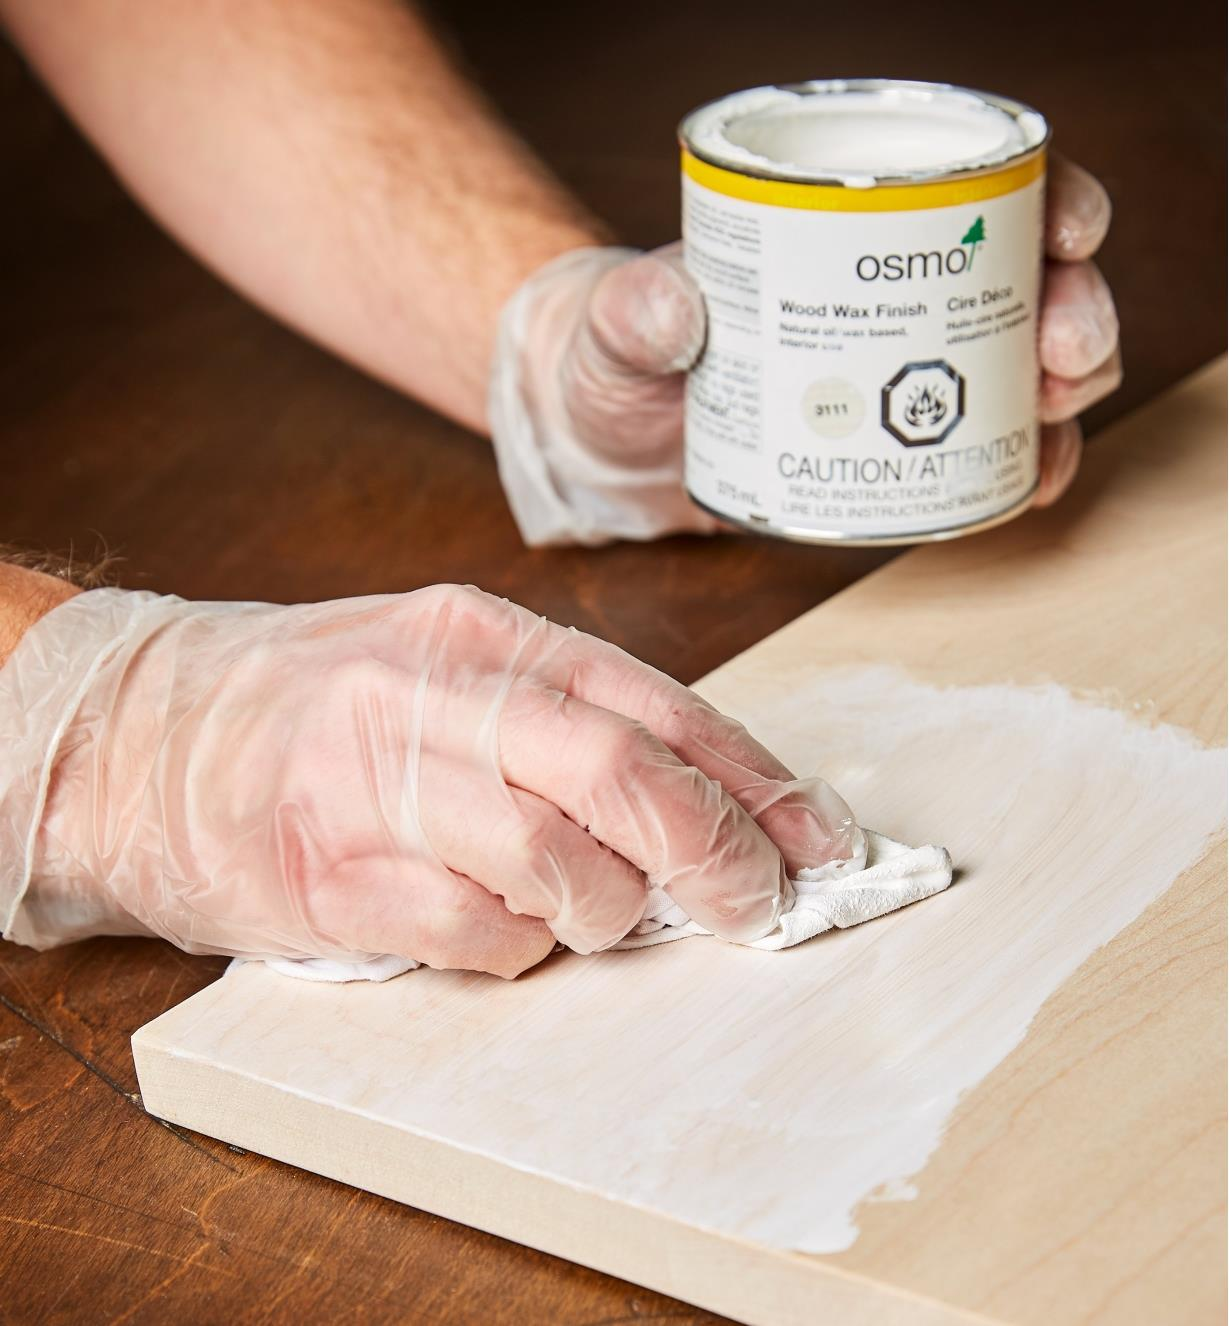 Using a cloth to apply Osmo white wood wax to a wood surface